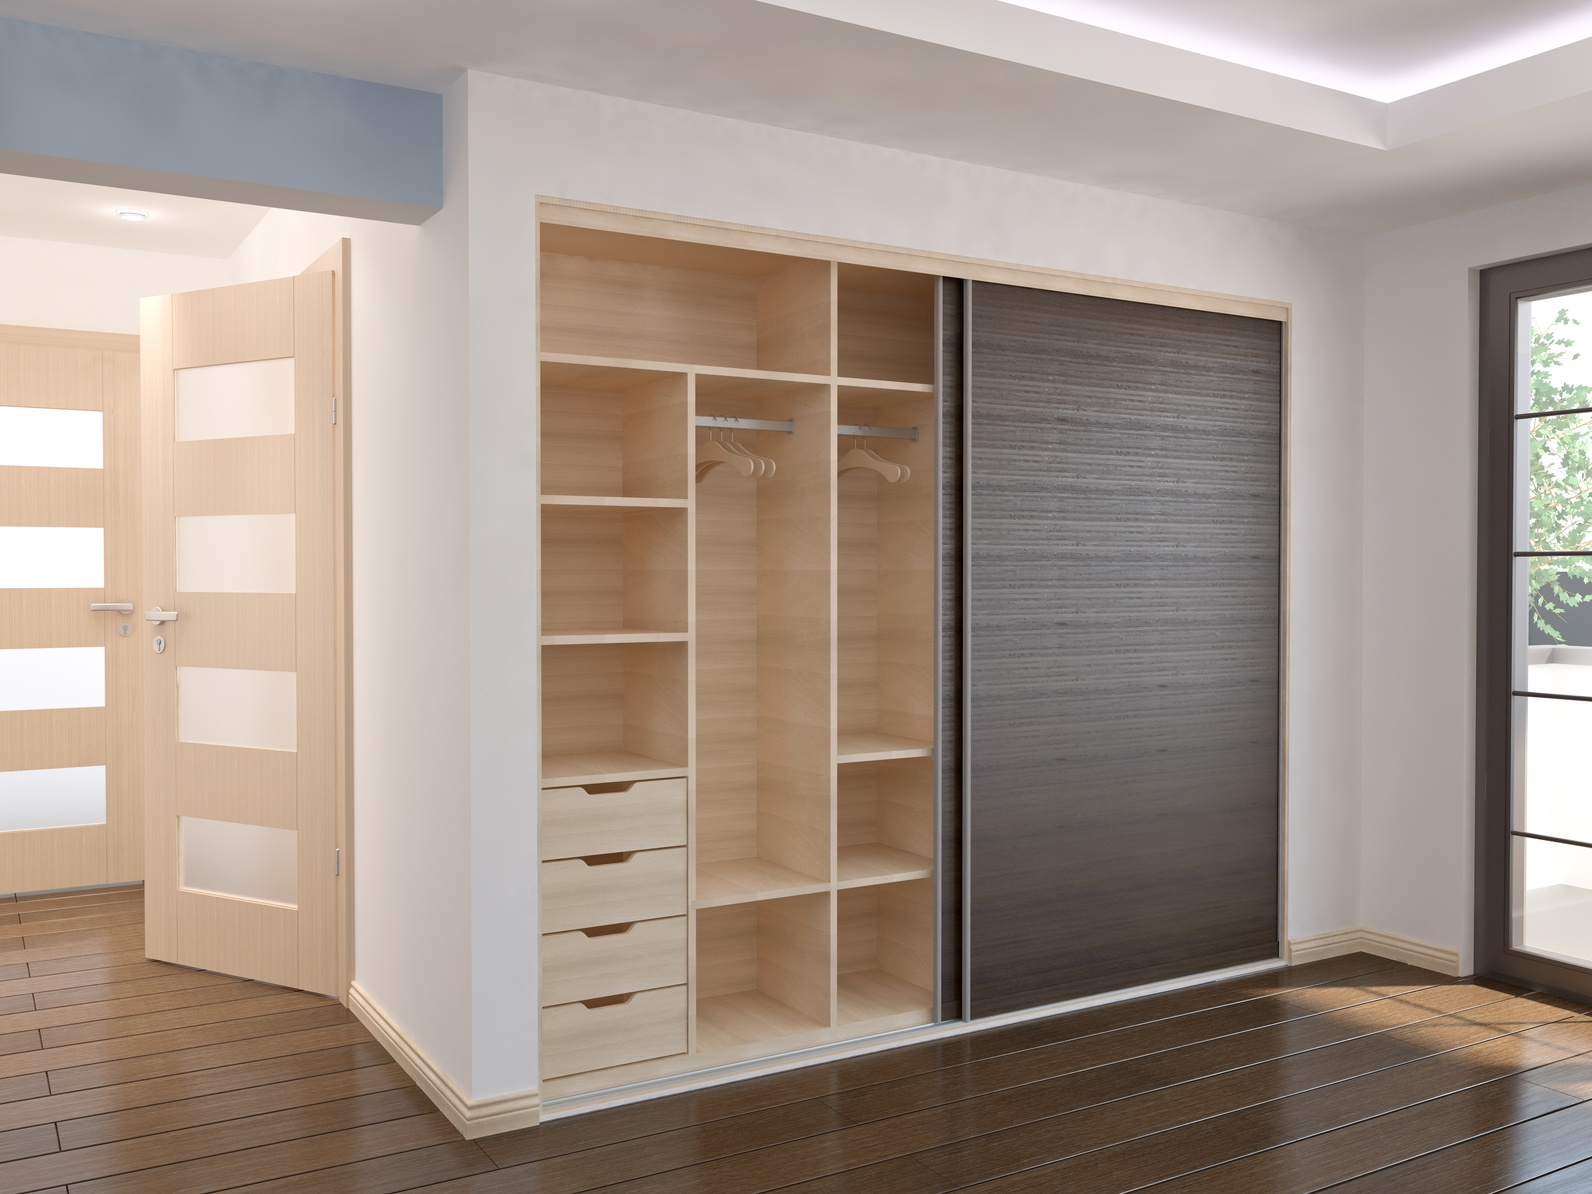 Bedroom Sliding Doors Sliding Wardrobe Doors Kits Bedroom Inside Cupboard Sliding Doors (Image 5 of 25)